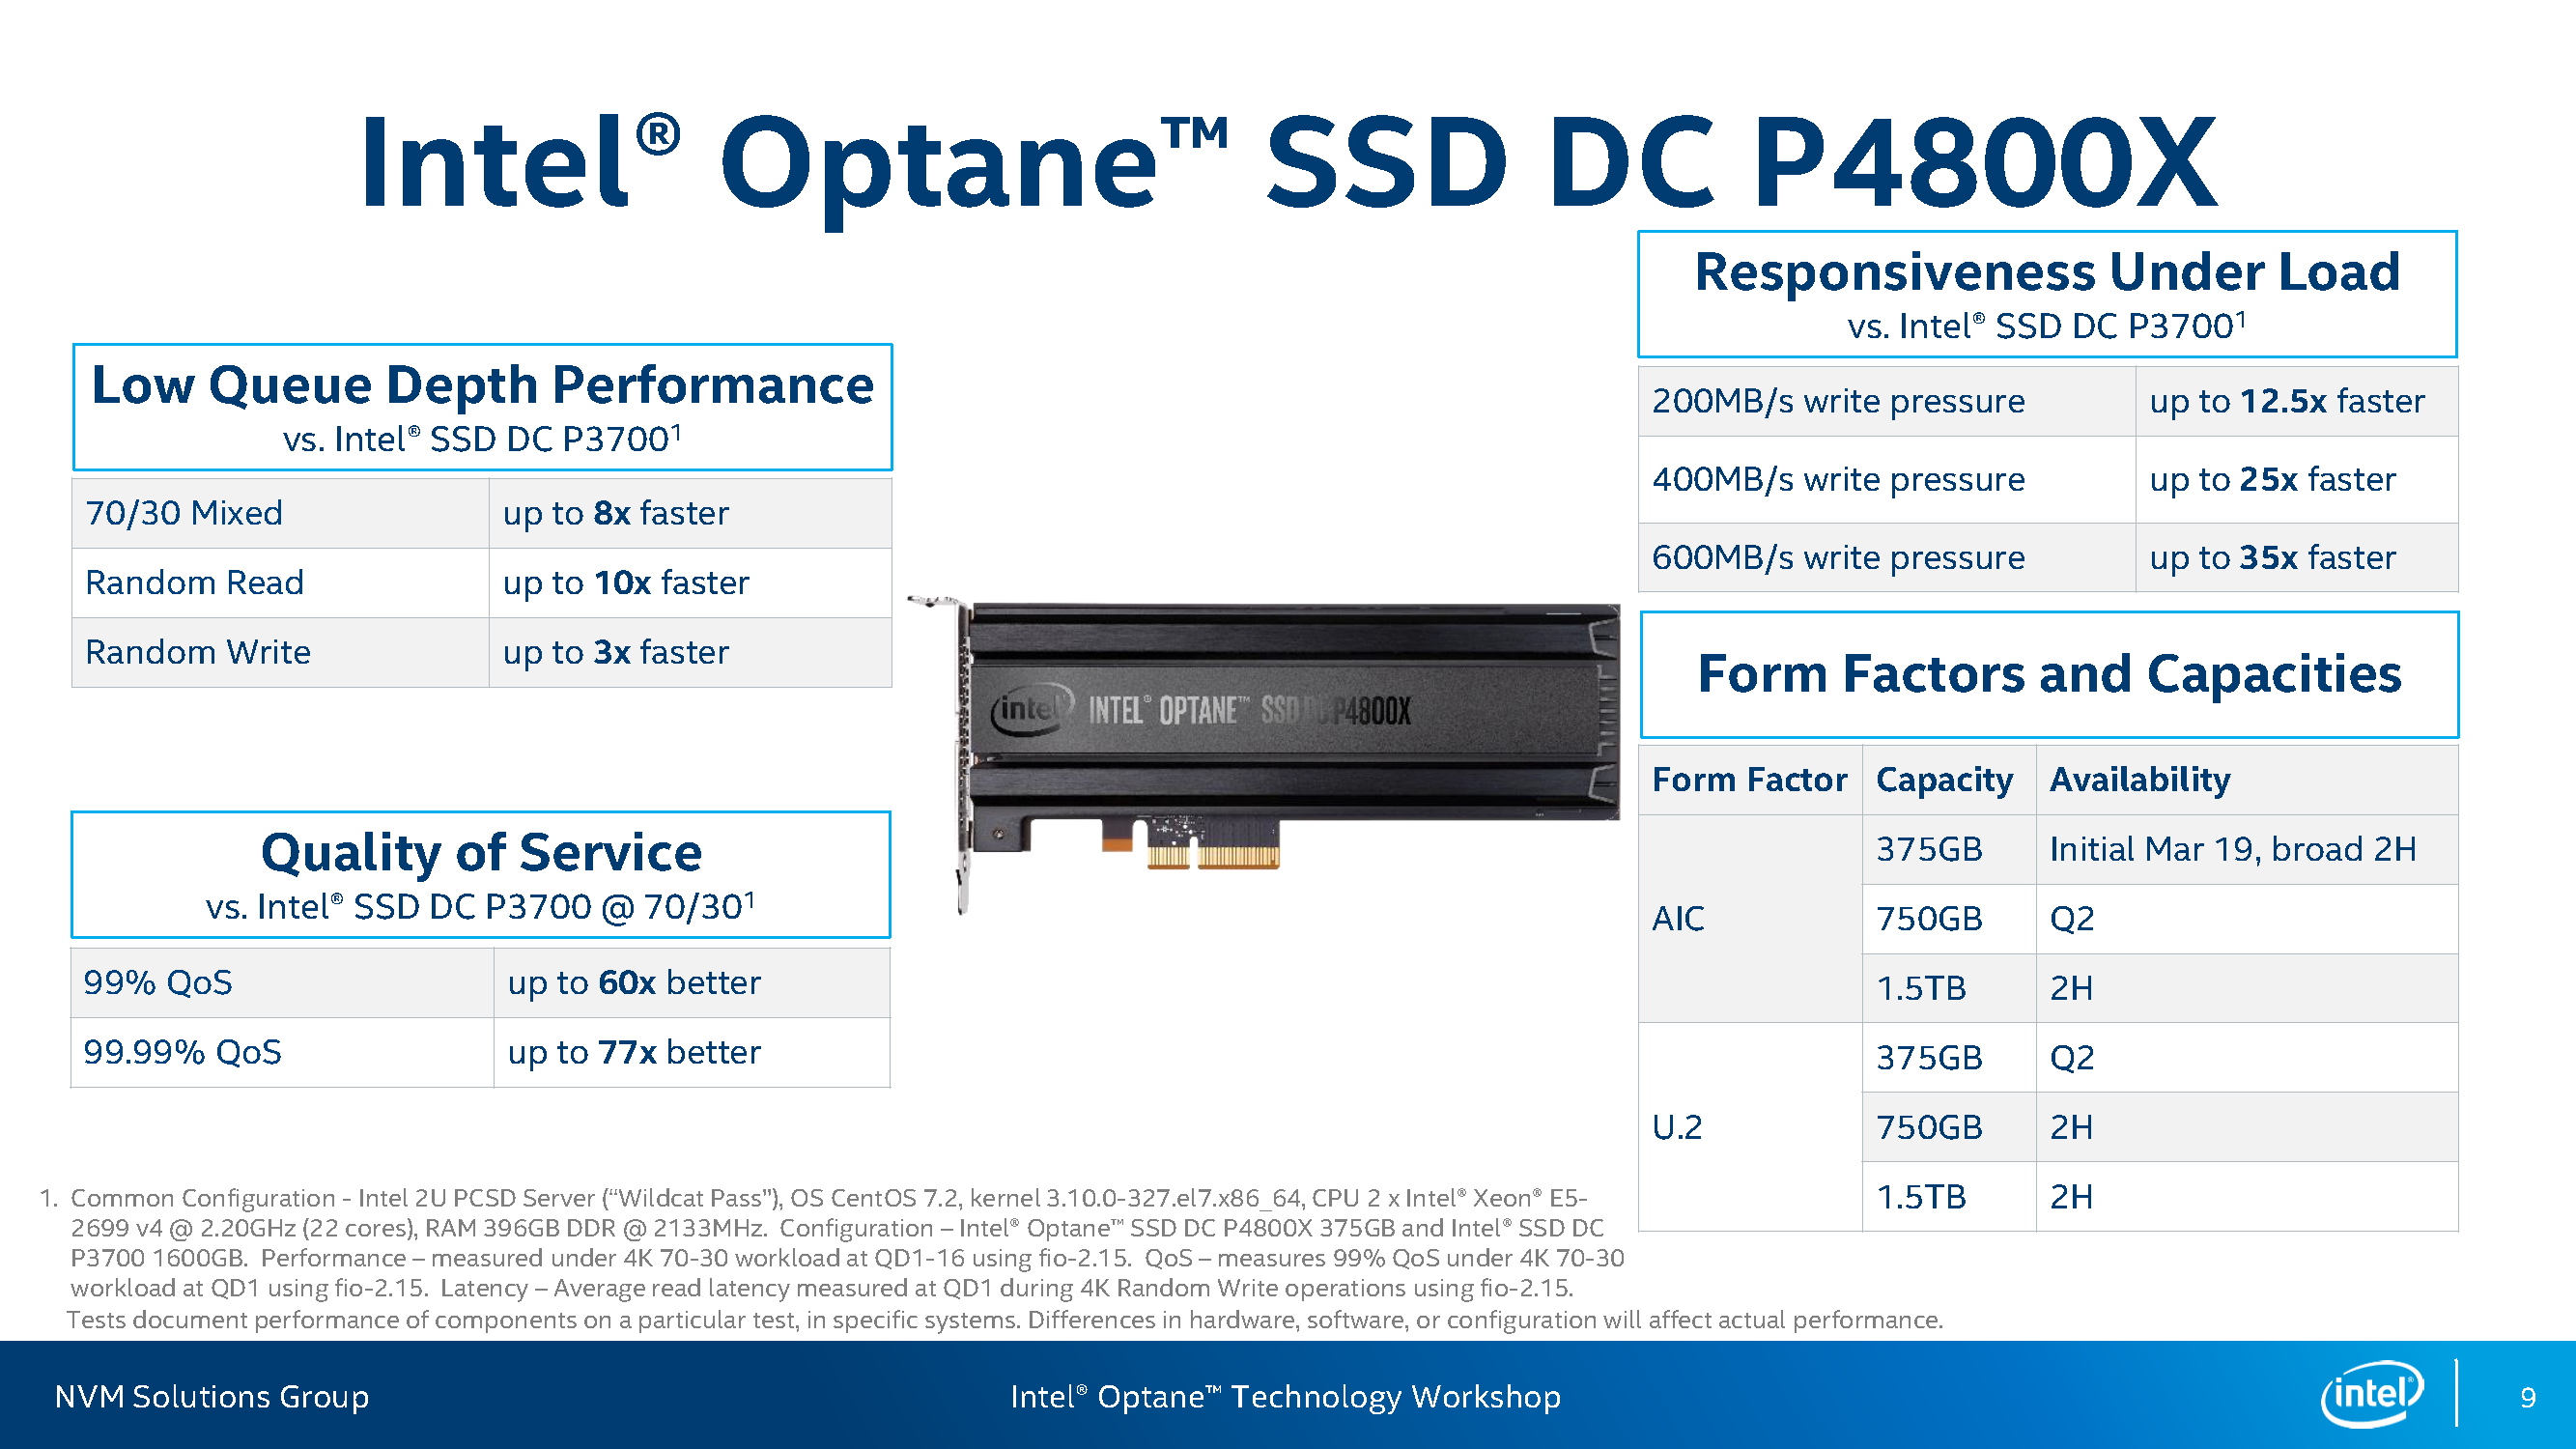 Optane SSD fast enough to be used as memory extender: Intel